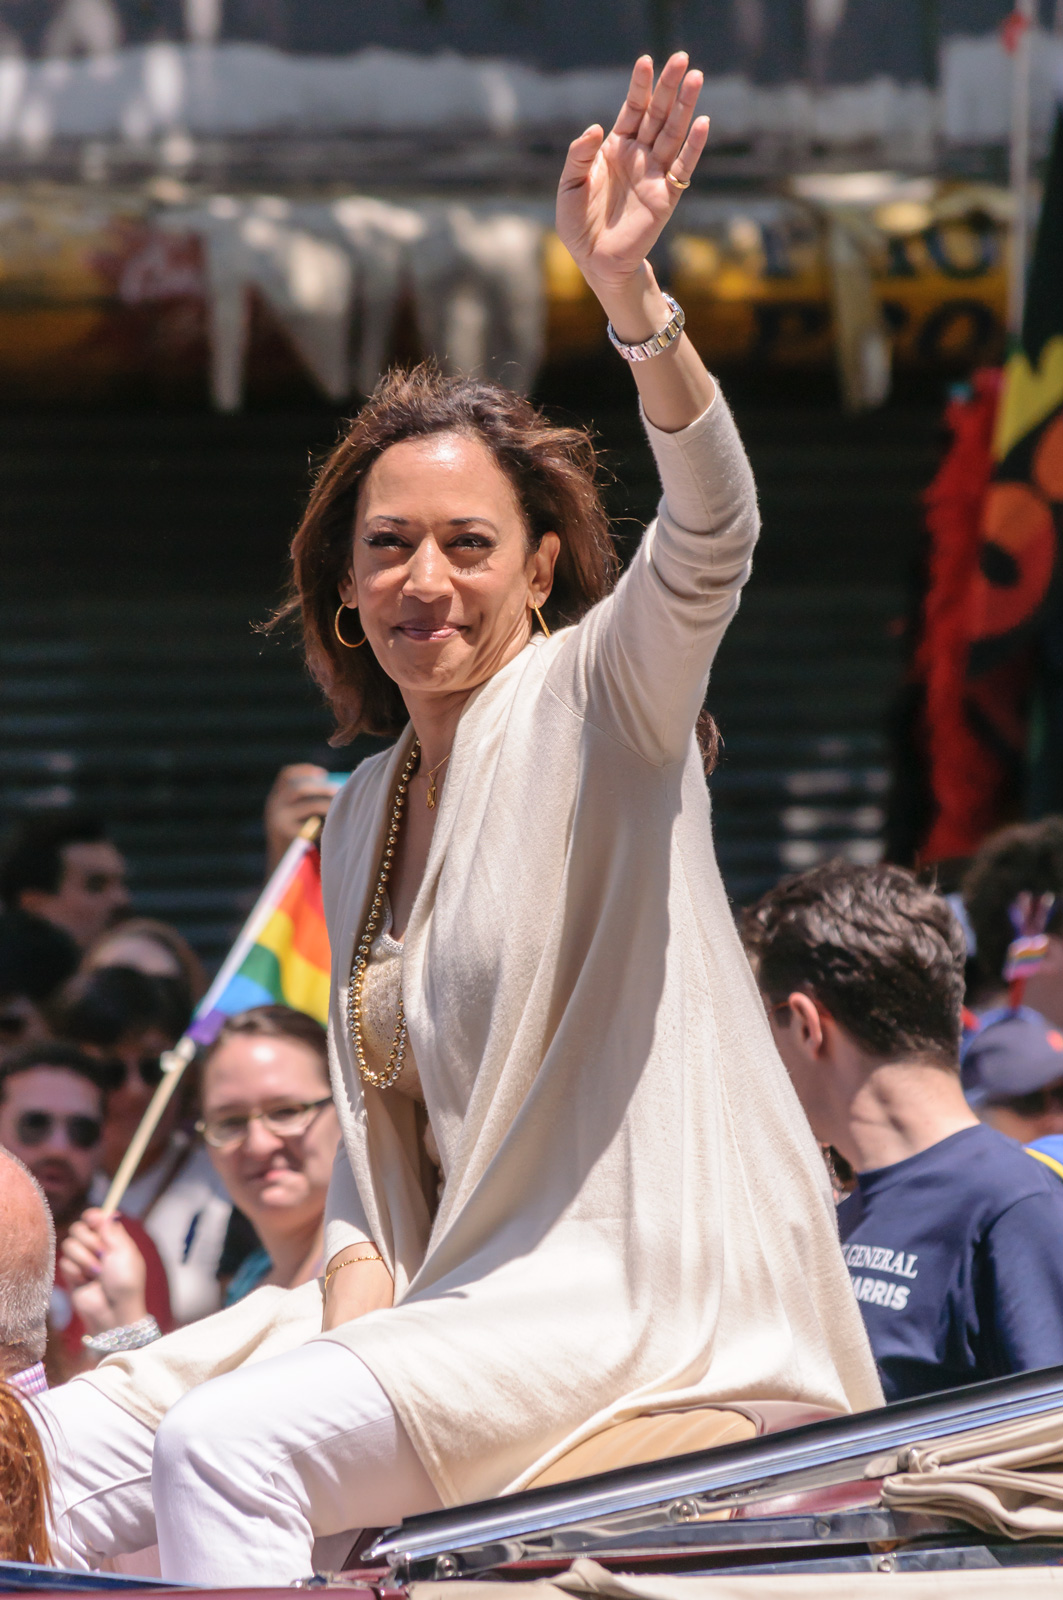 Attorney General Kamala Harris, San Francisco Pride 2013